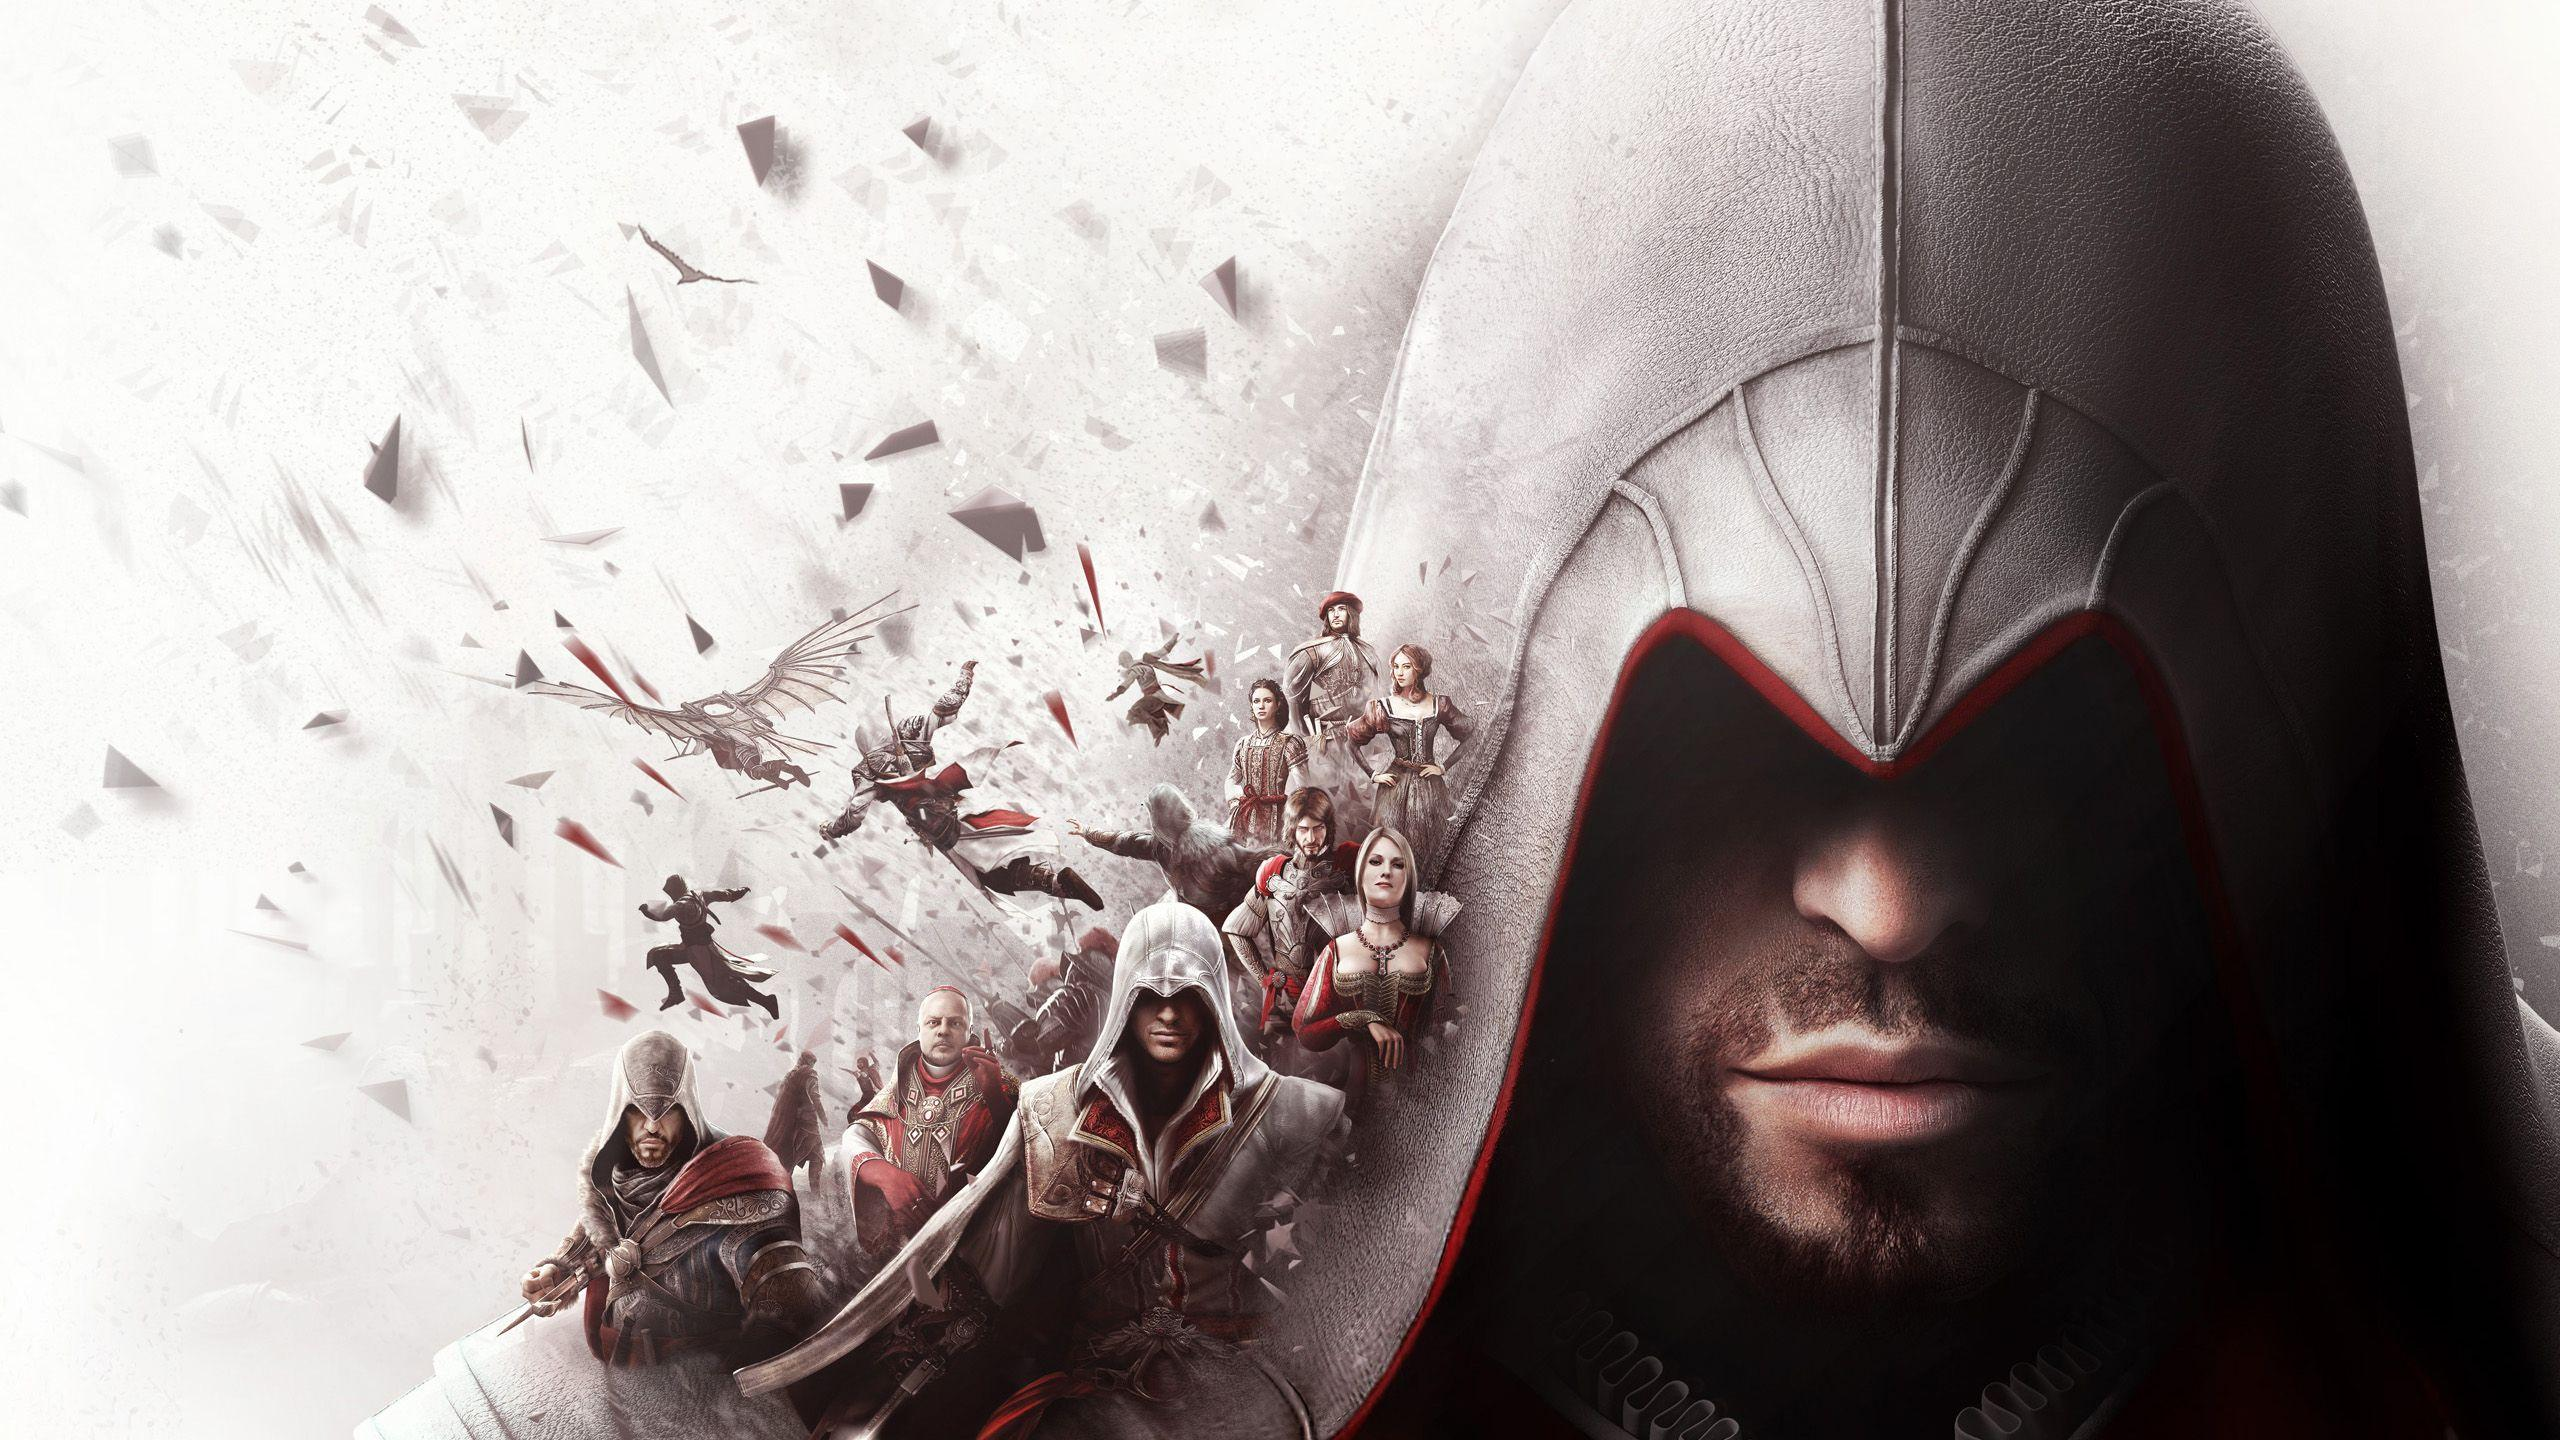 https://www.hdwallpapers.in/walls/assassins_creed_...